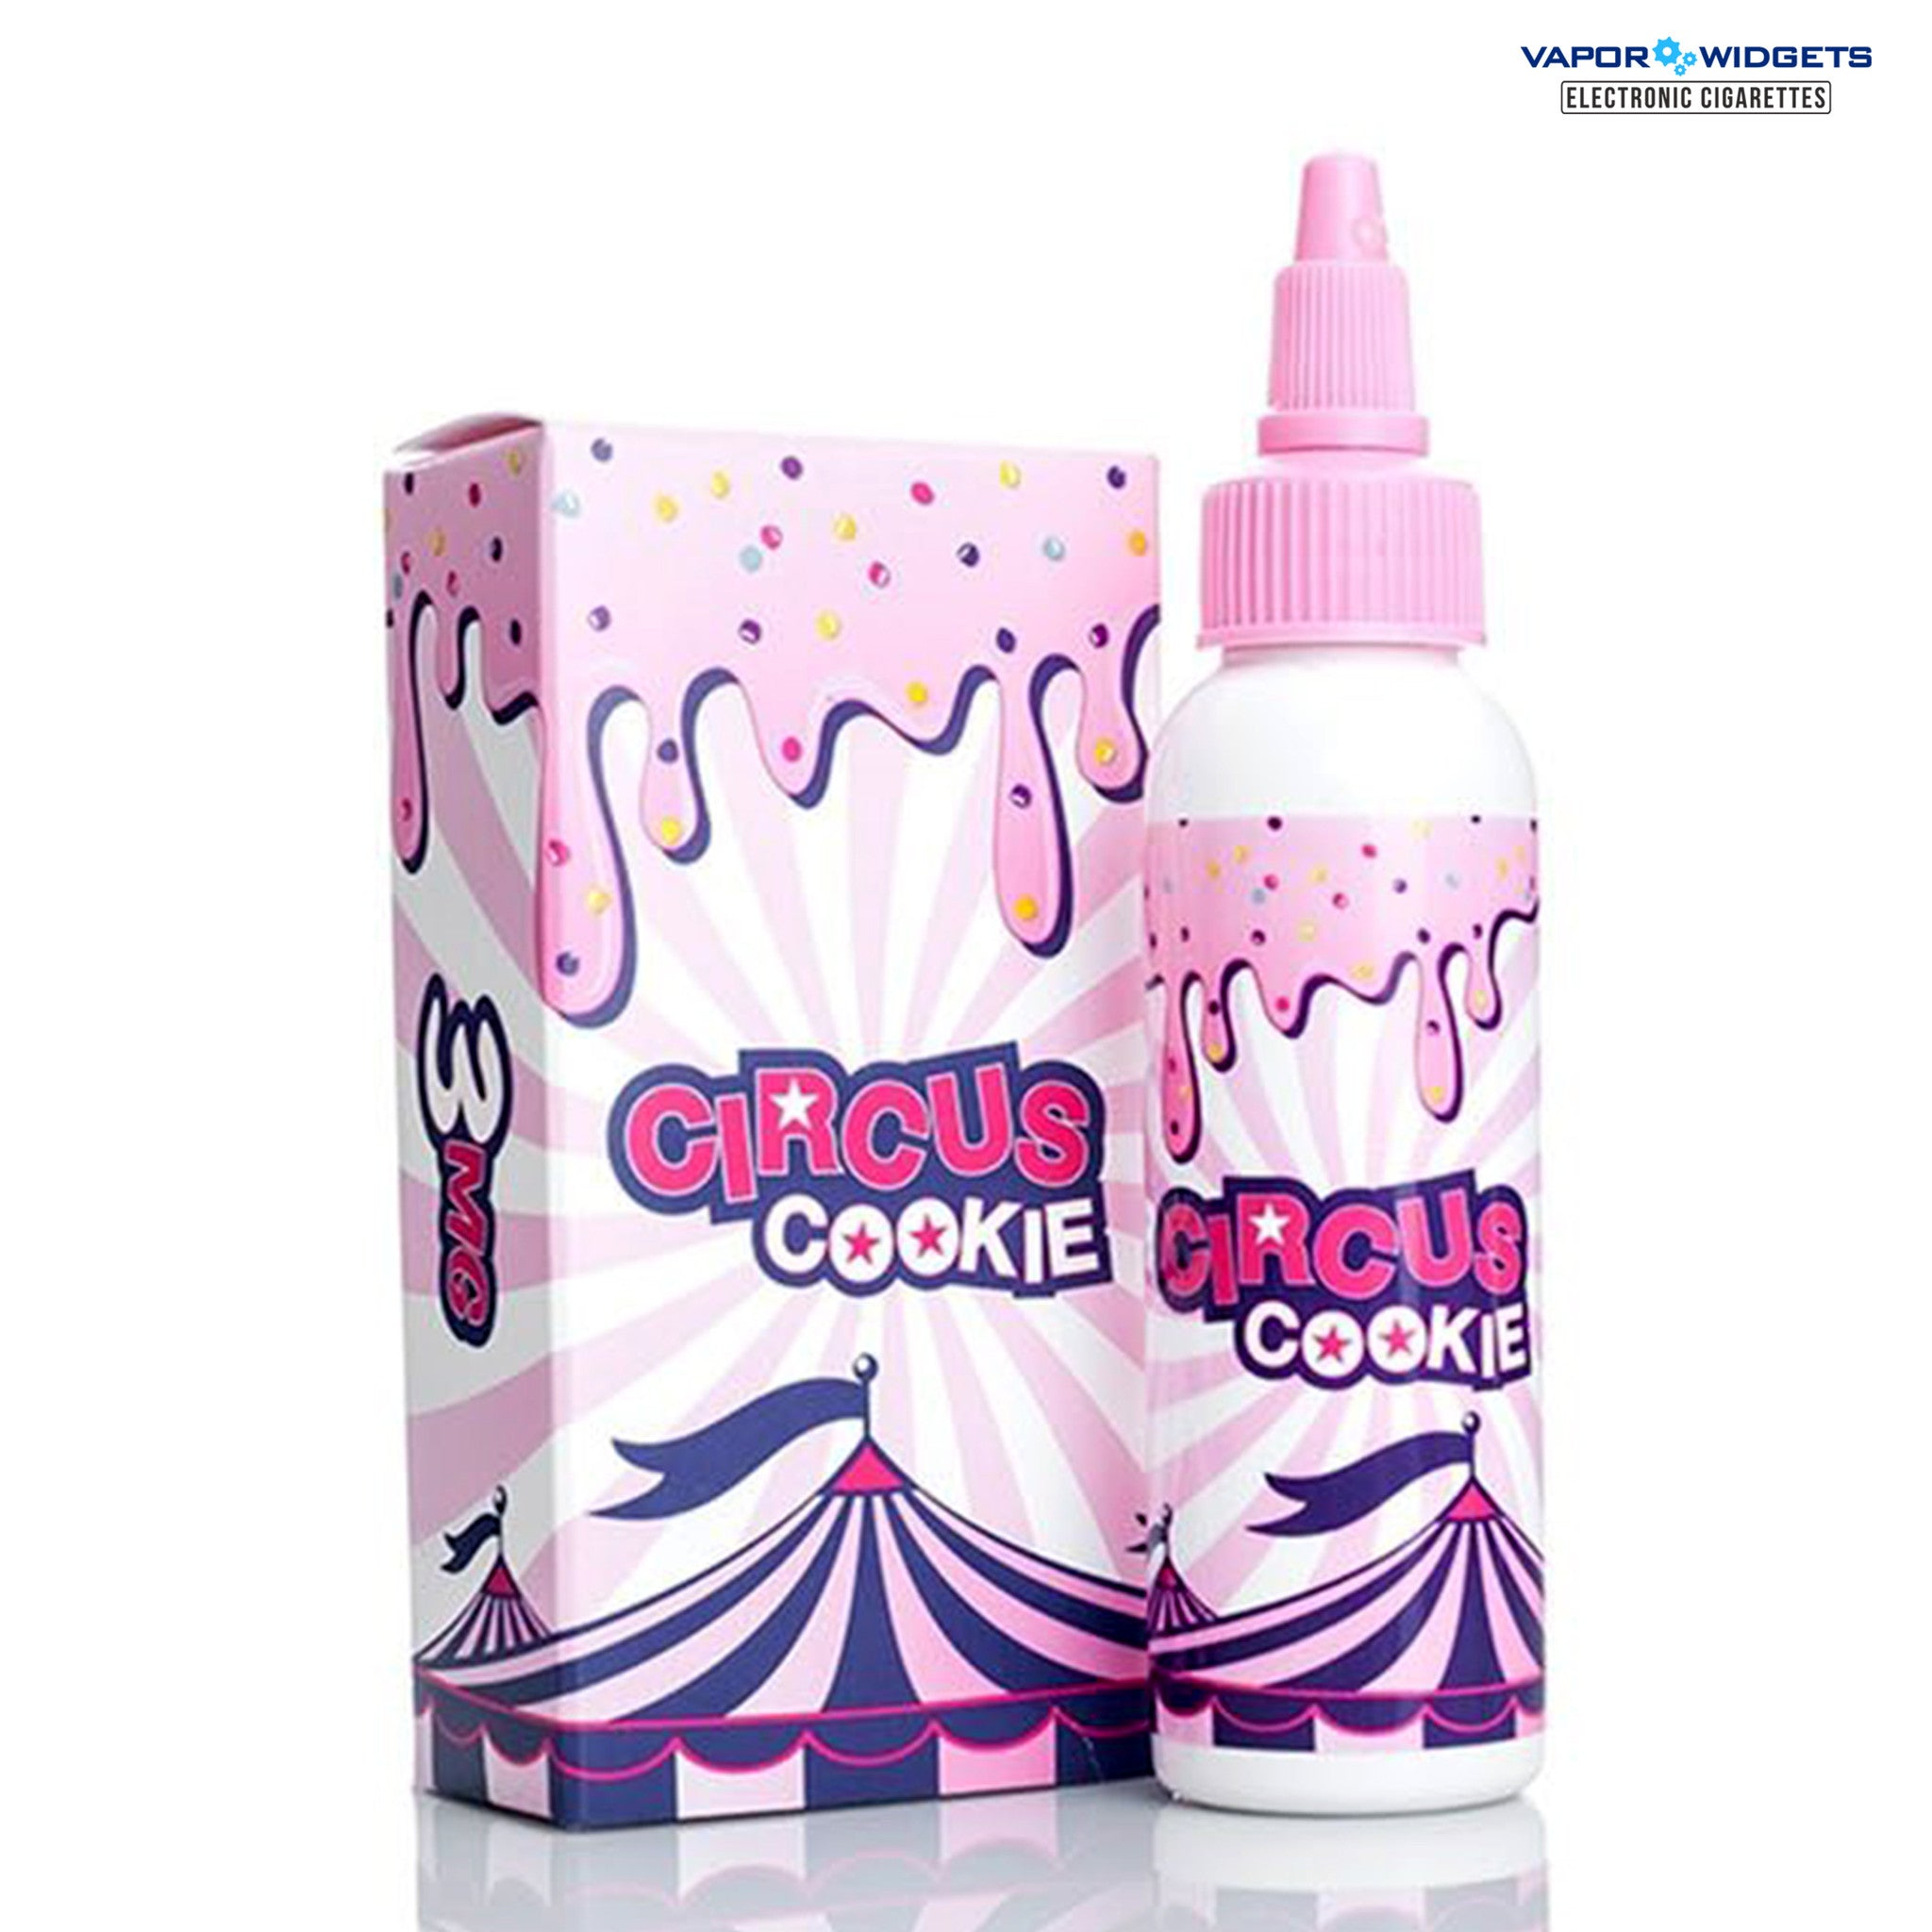 Circus Cookie High VG E-Liquid | Vapor Widgets